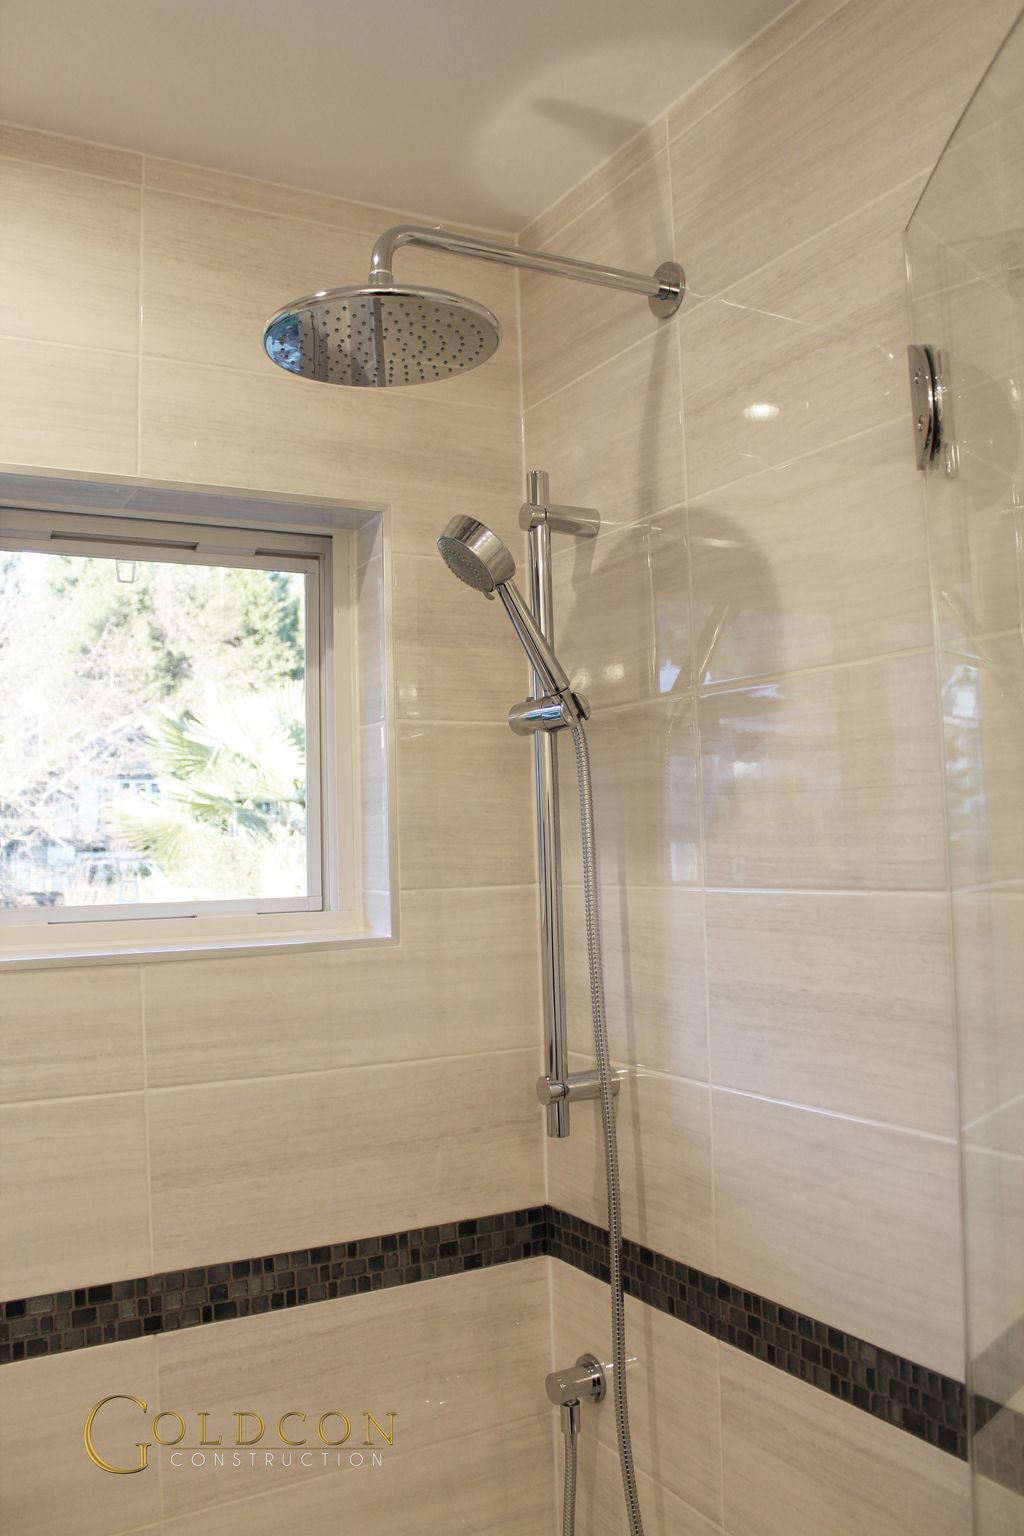 Beautiful Bathroom Renovation Project Featuring 8 x